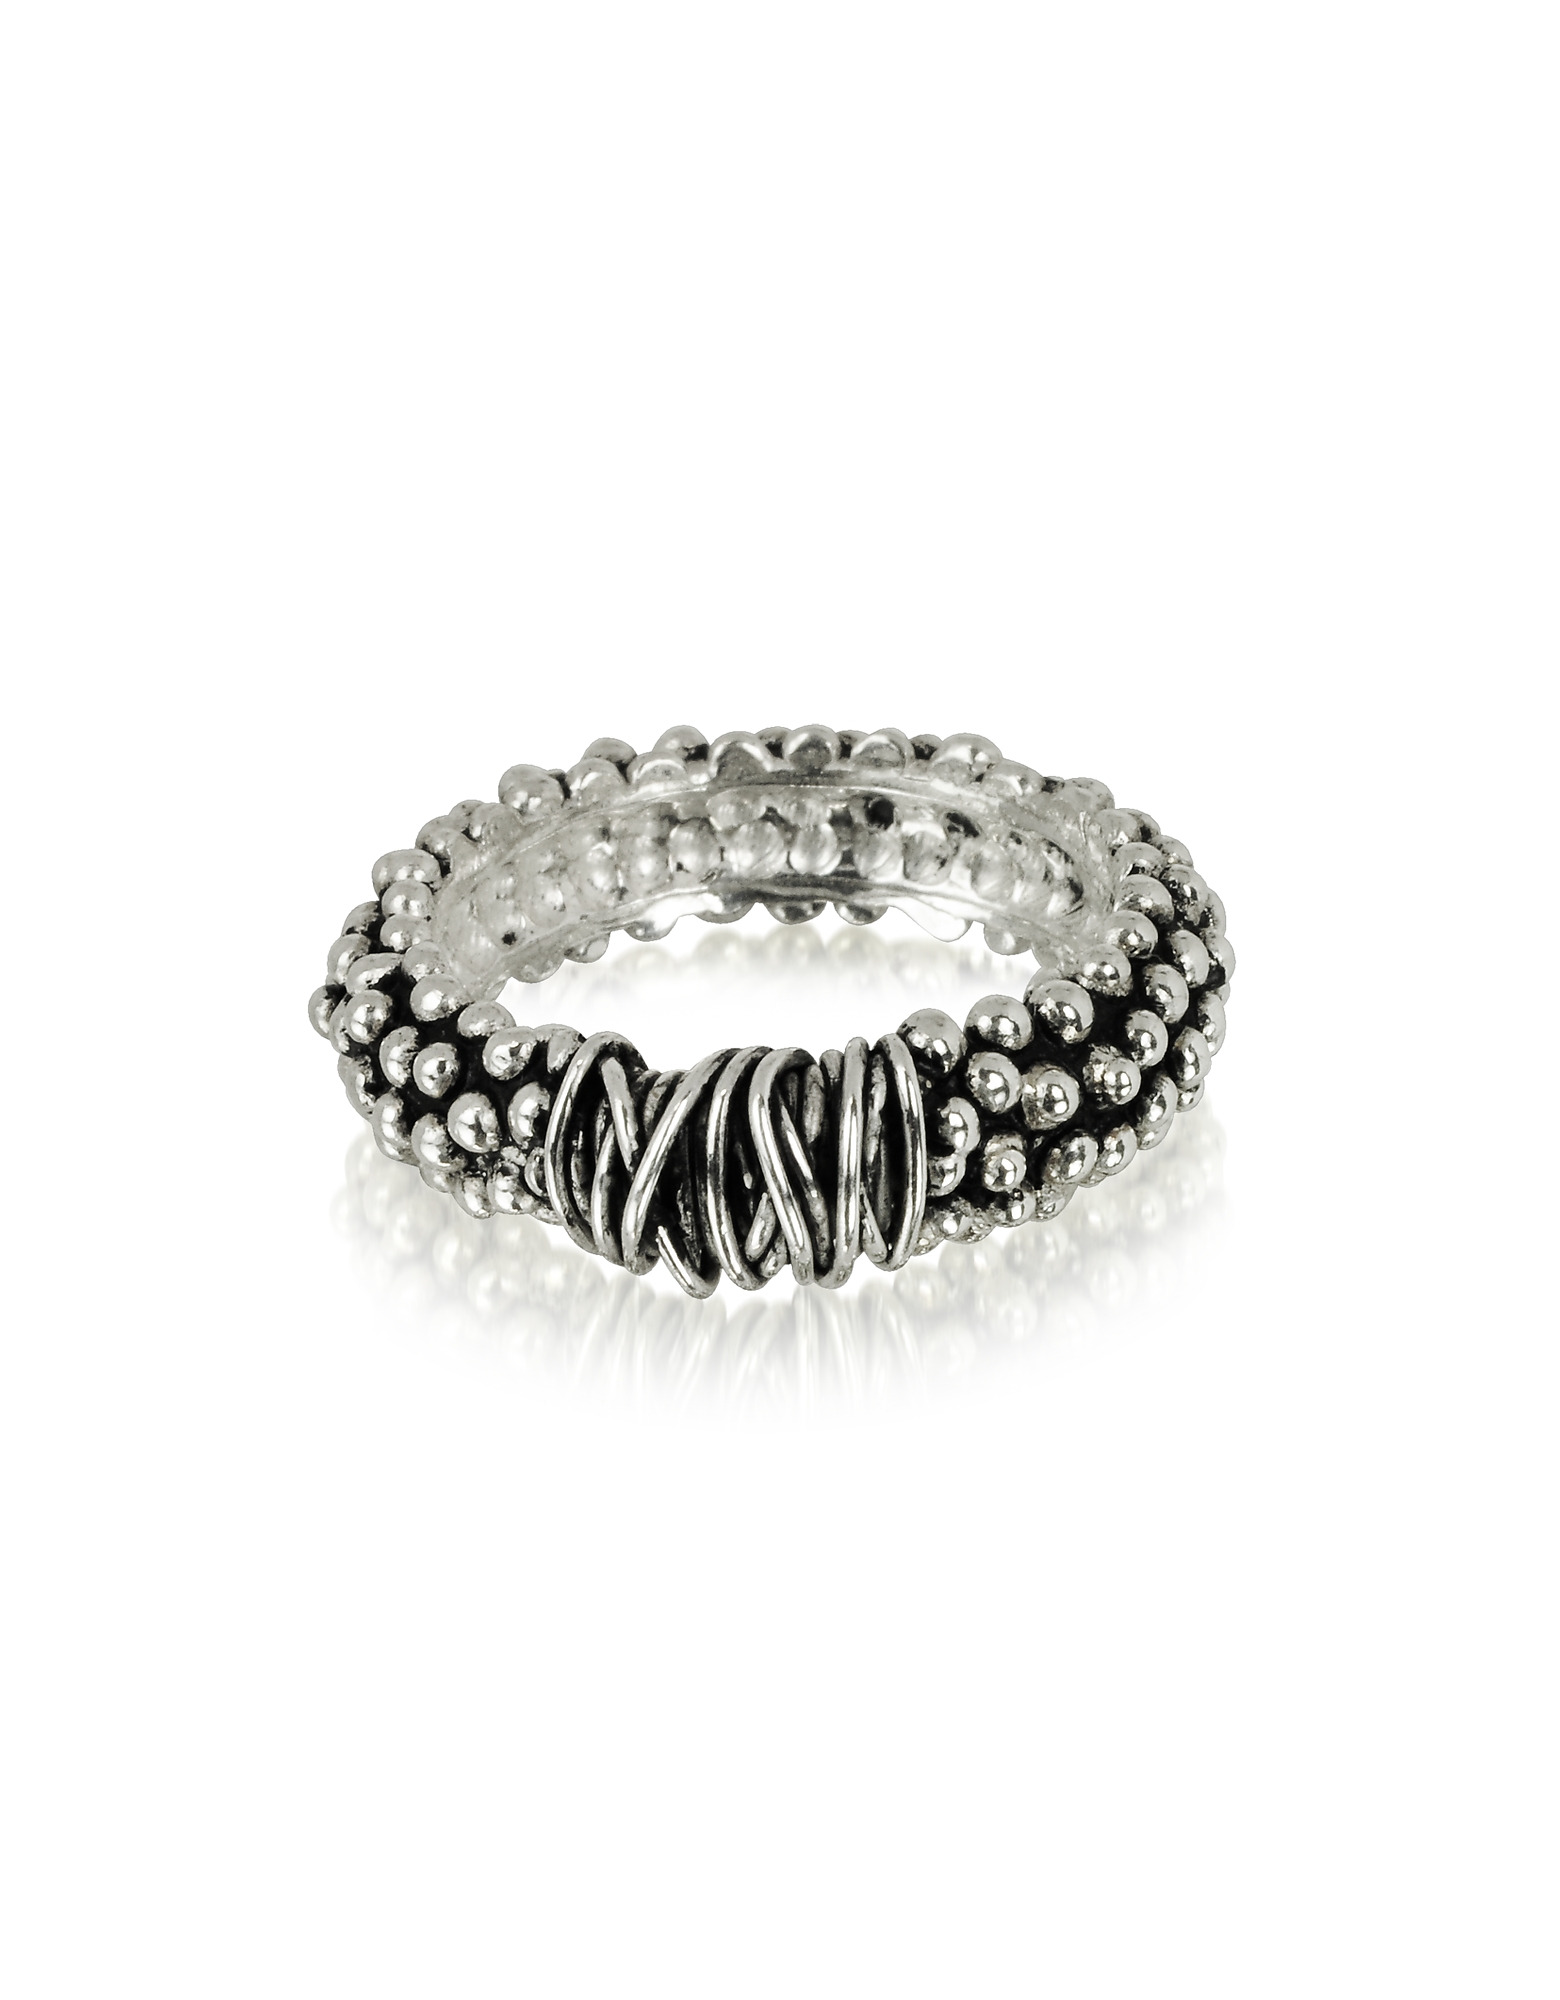 Sterling Silver Ring. Sterling Silver Ring crafted in oxidized sterling silver, is a modern blend of traditional Etruscan techniques and minimalist de